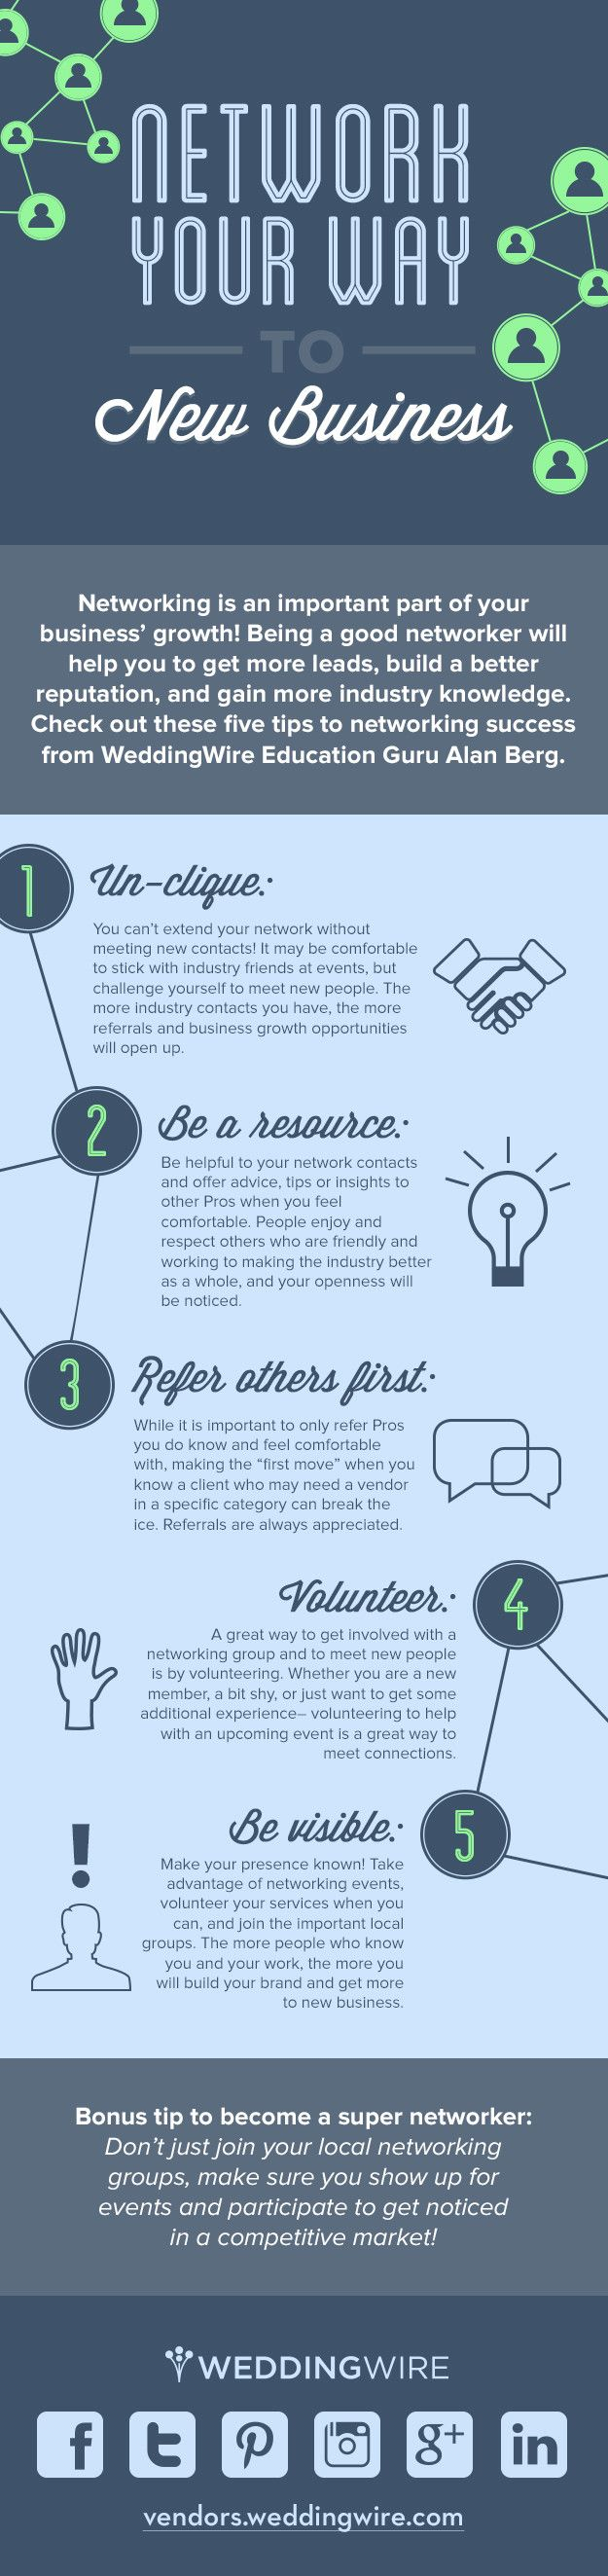 5 Keys to Networking for Business Leads